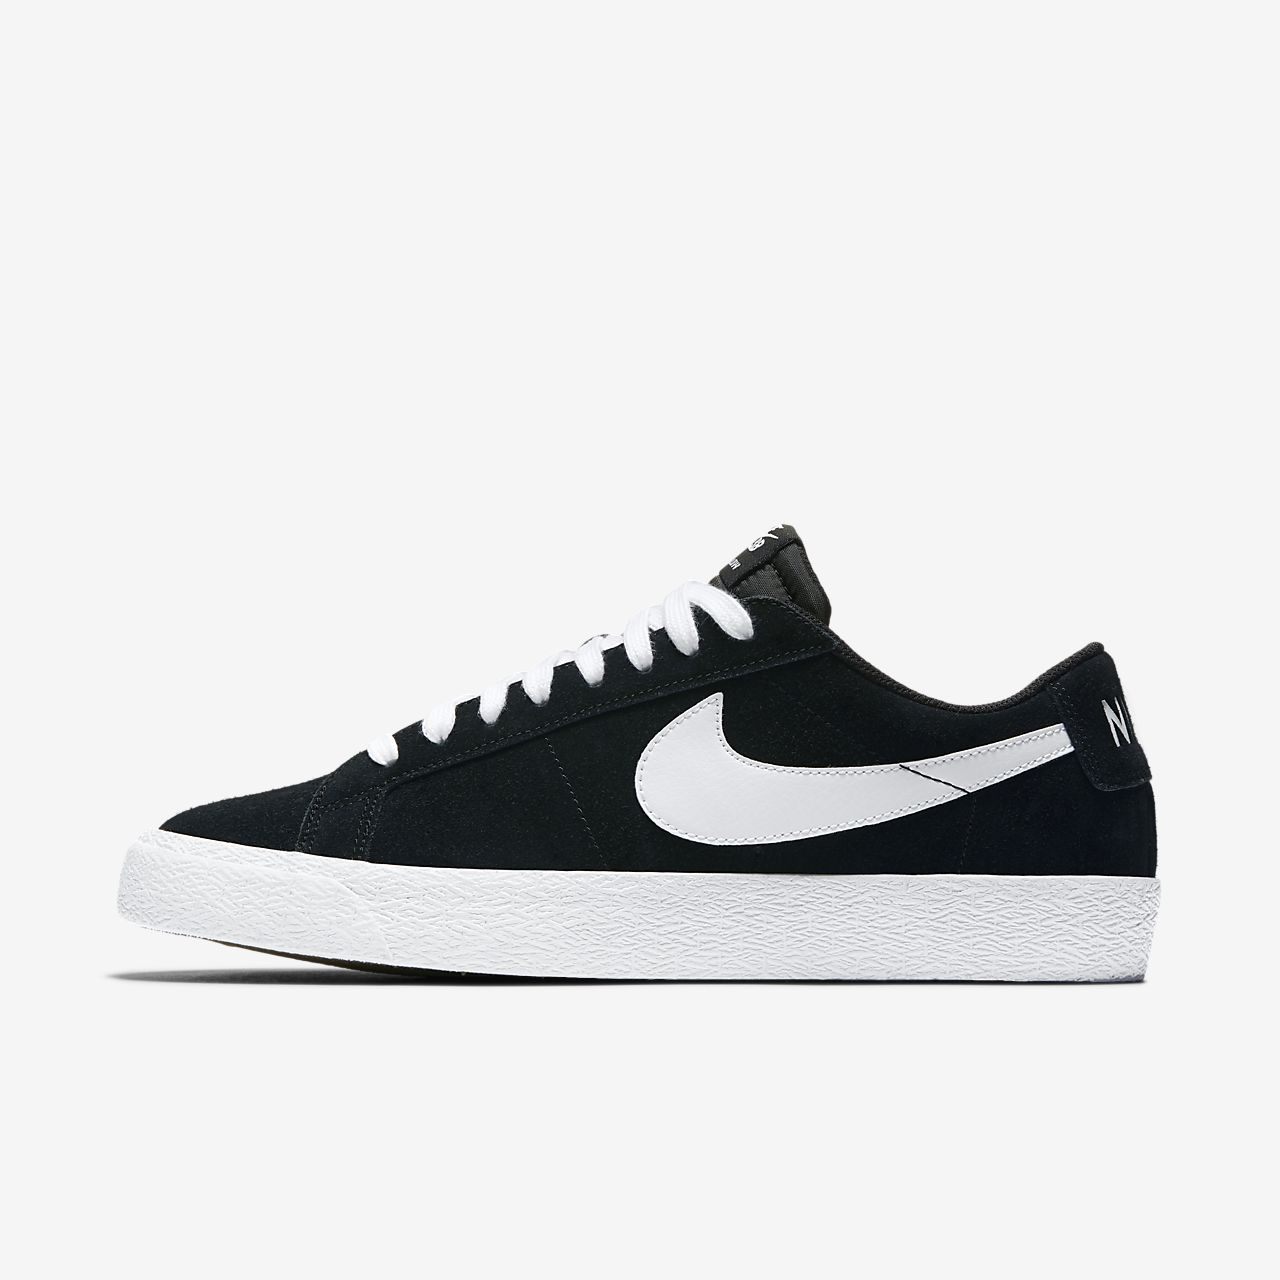 Nike SB Blazer Zoom Low Mens Skateboarding Shoe